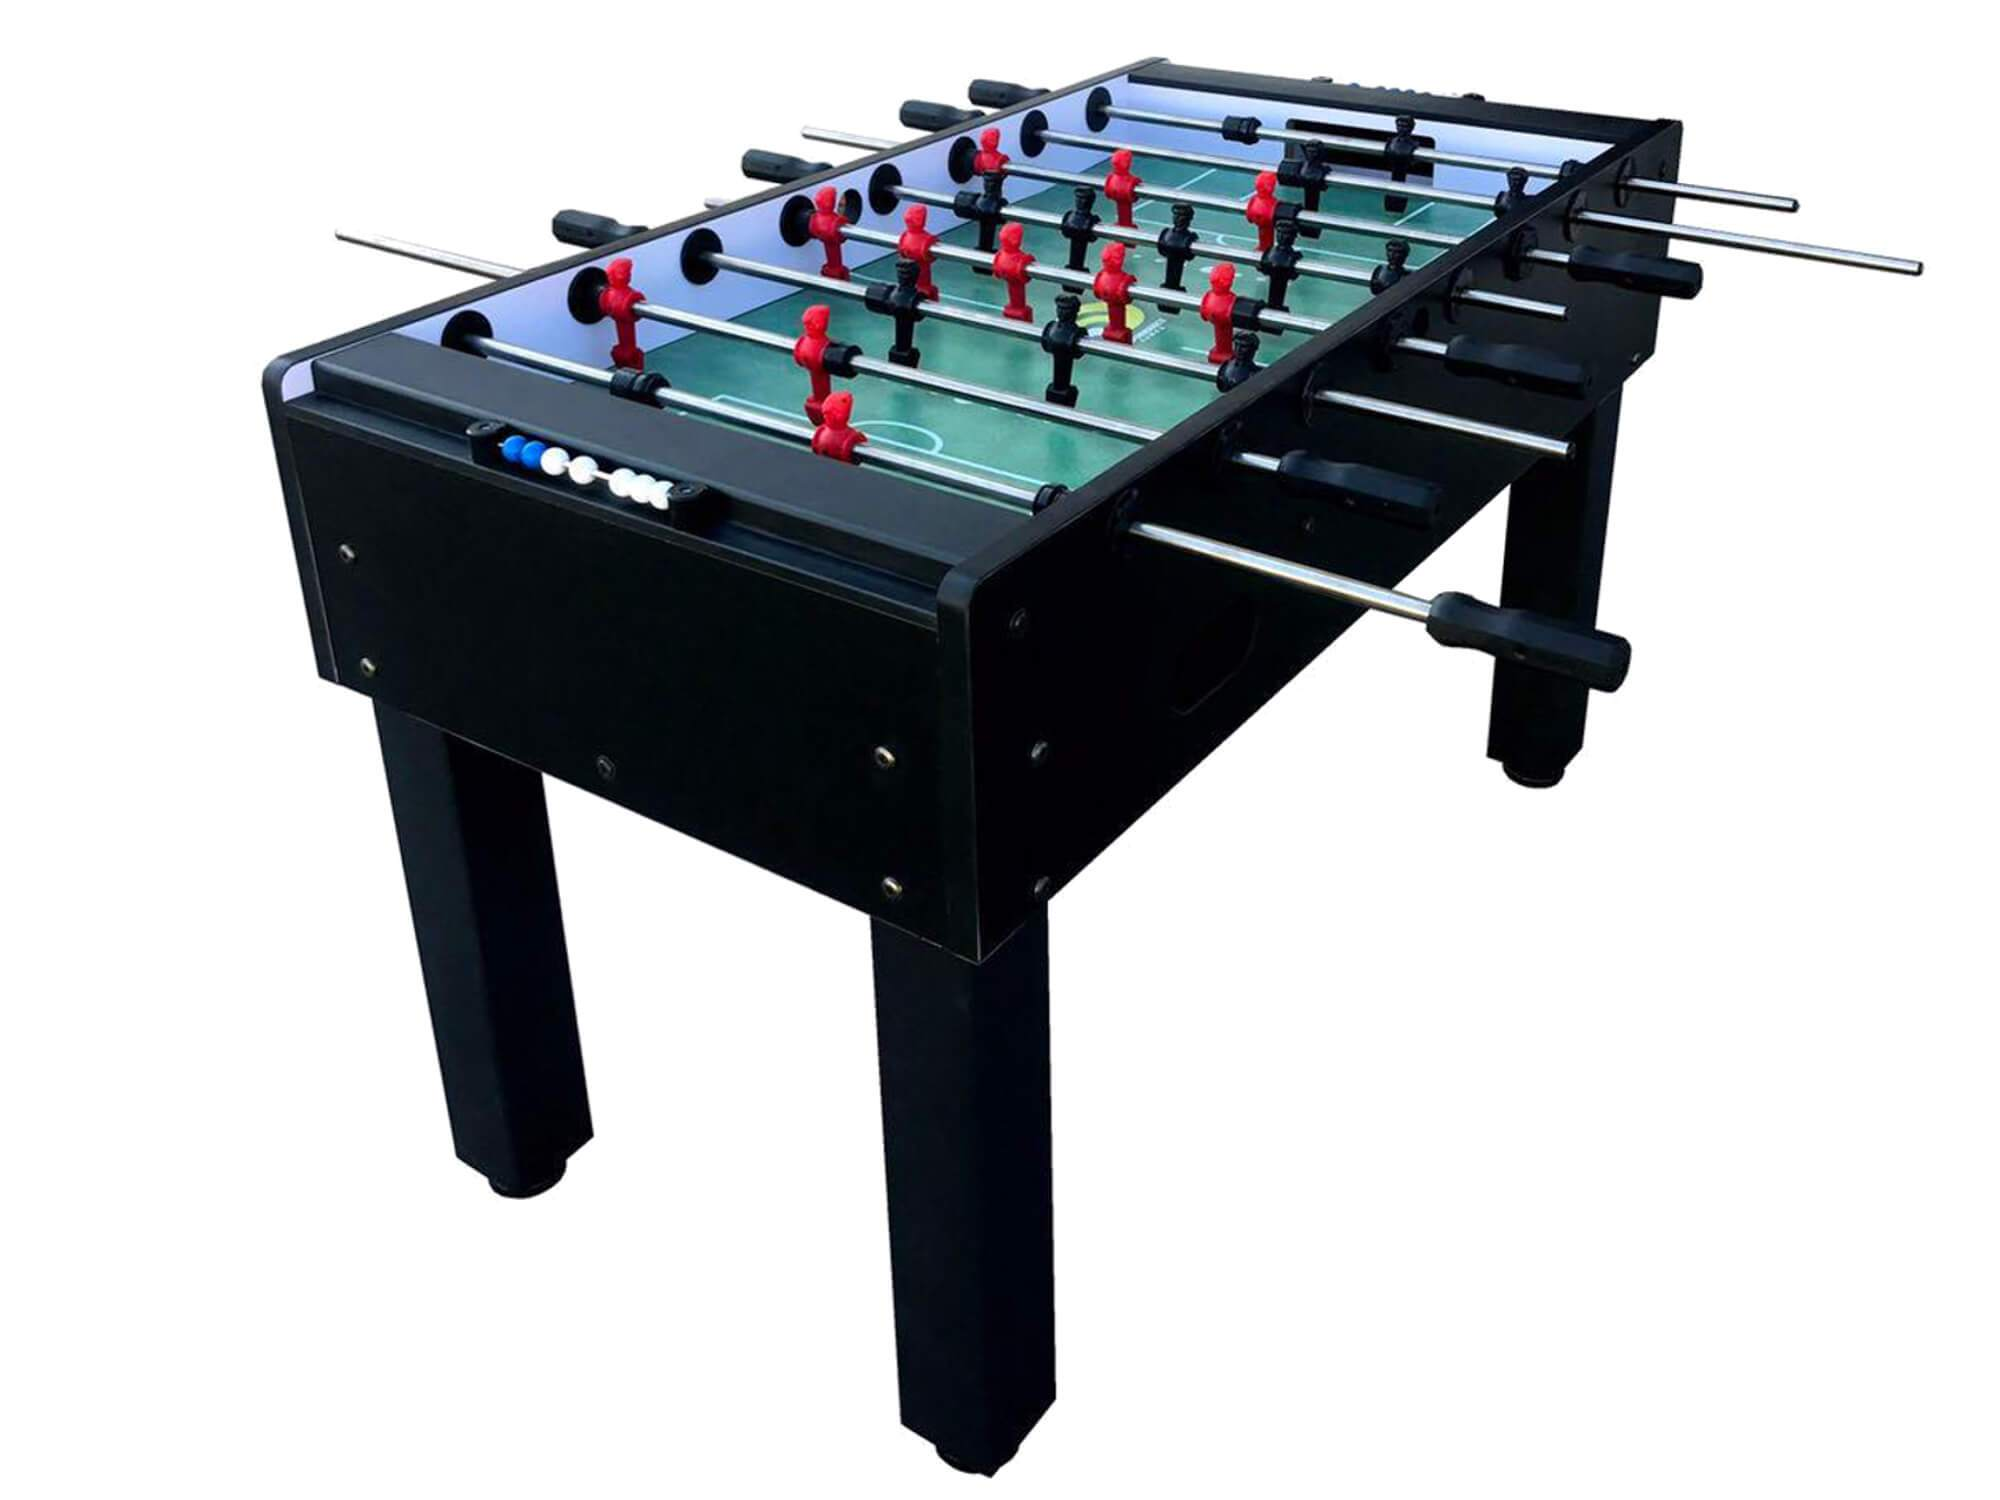 "Performance Games Sure Shot R1 Foosball Table 56"" - Gaming Blaze"